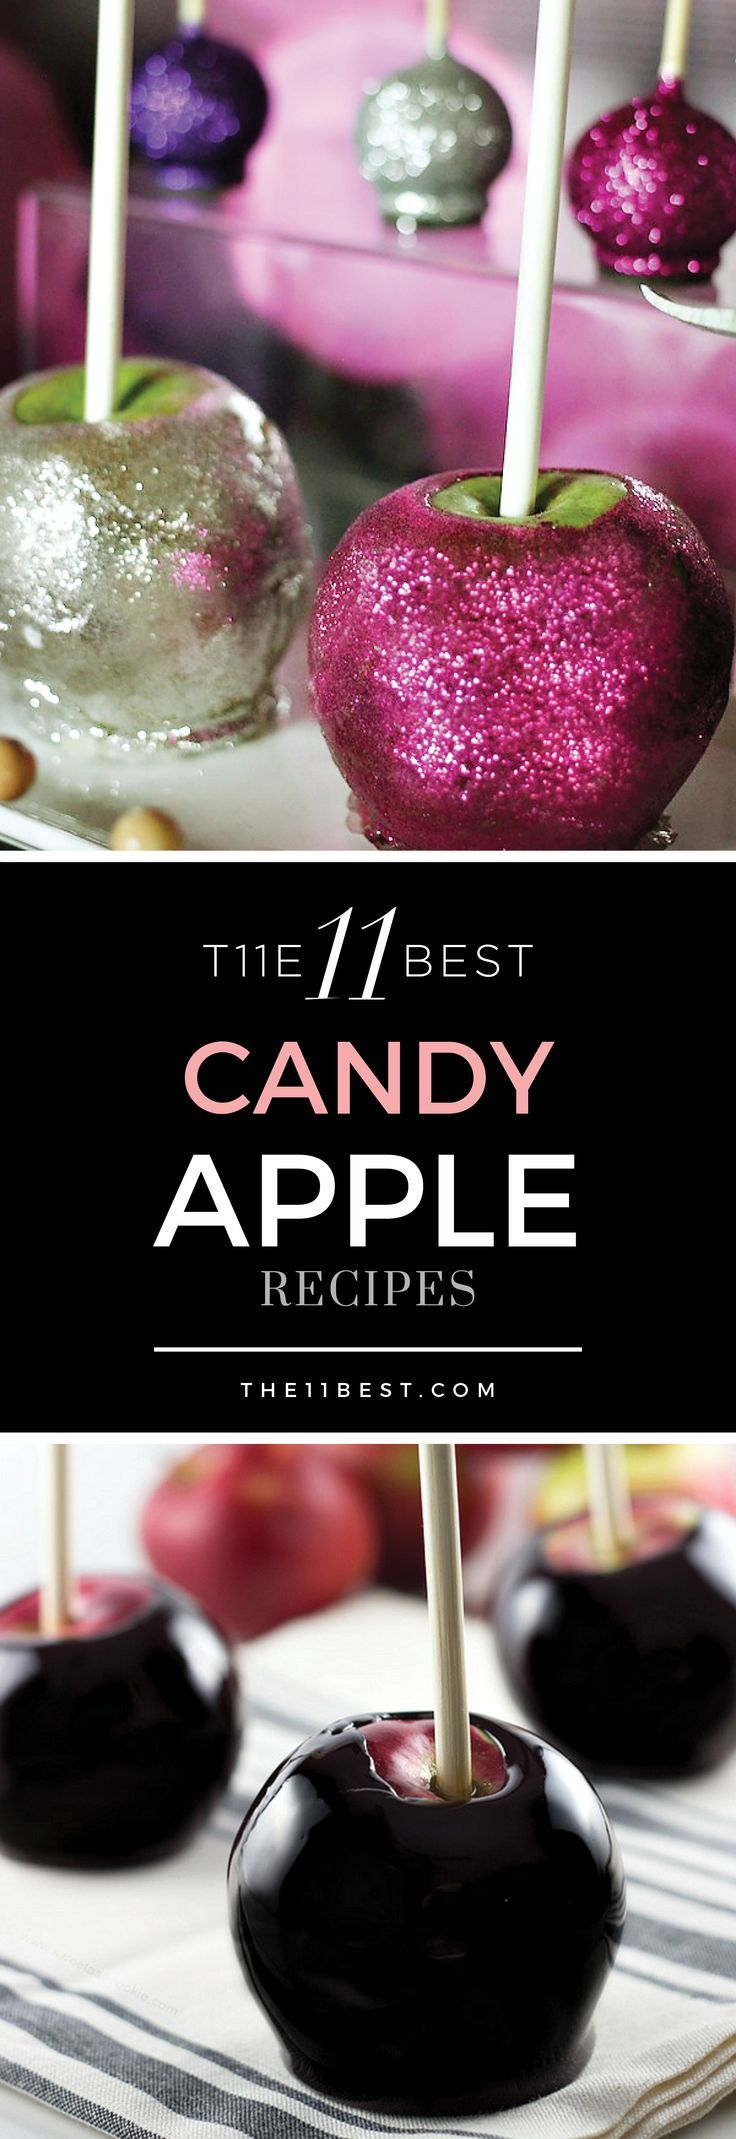 The 11 Best Candy Apple Recipes!!! SO PRETTY! (Christmas Candy Cake)